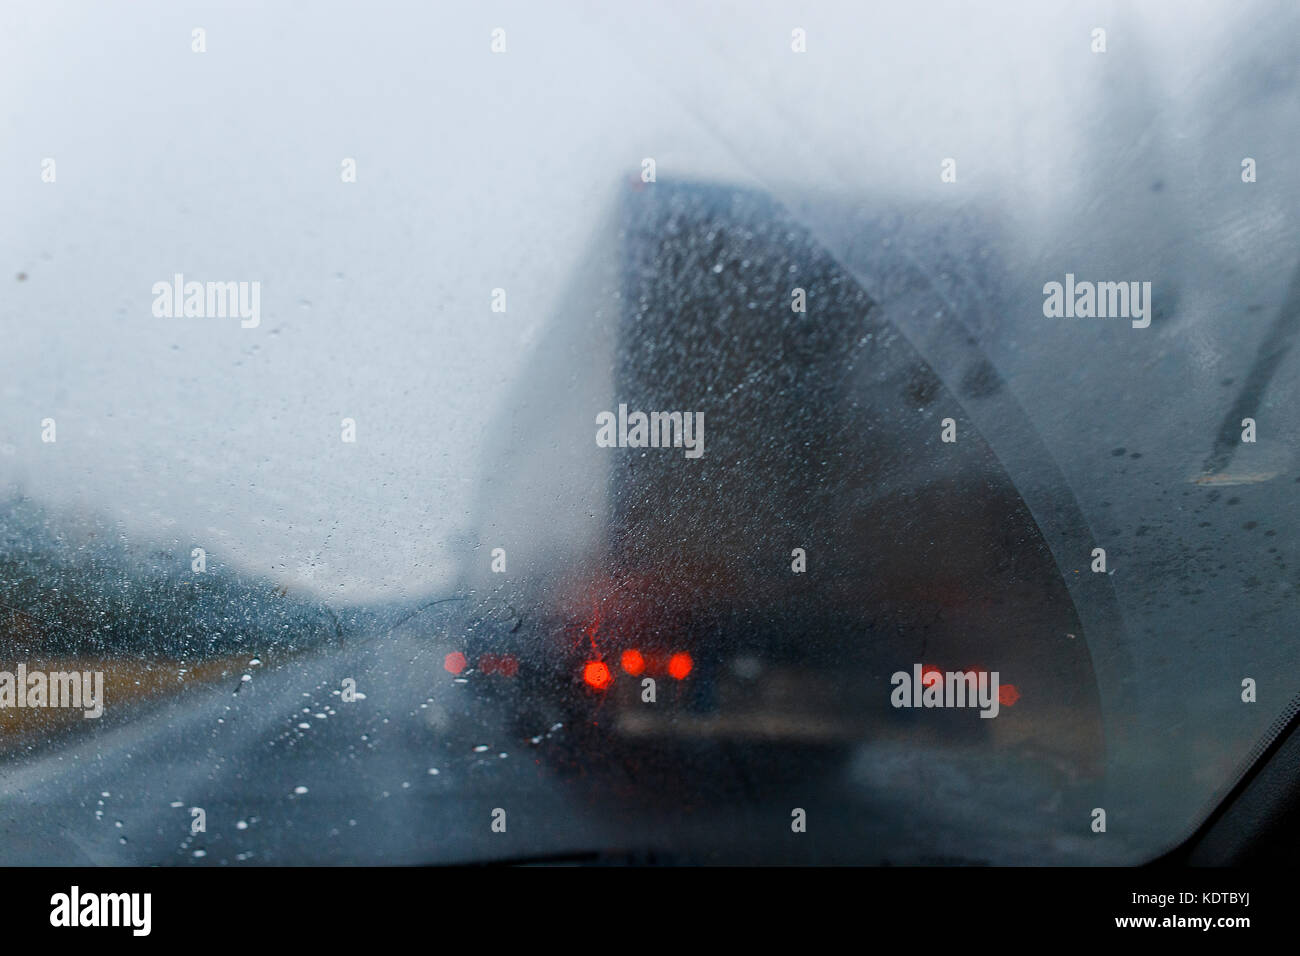 Rain drops on windscreen and blurred truck in forest road. Overtaking of the truck. Low visibility. - Stock Image